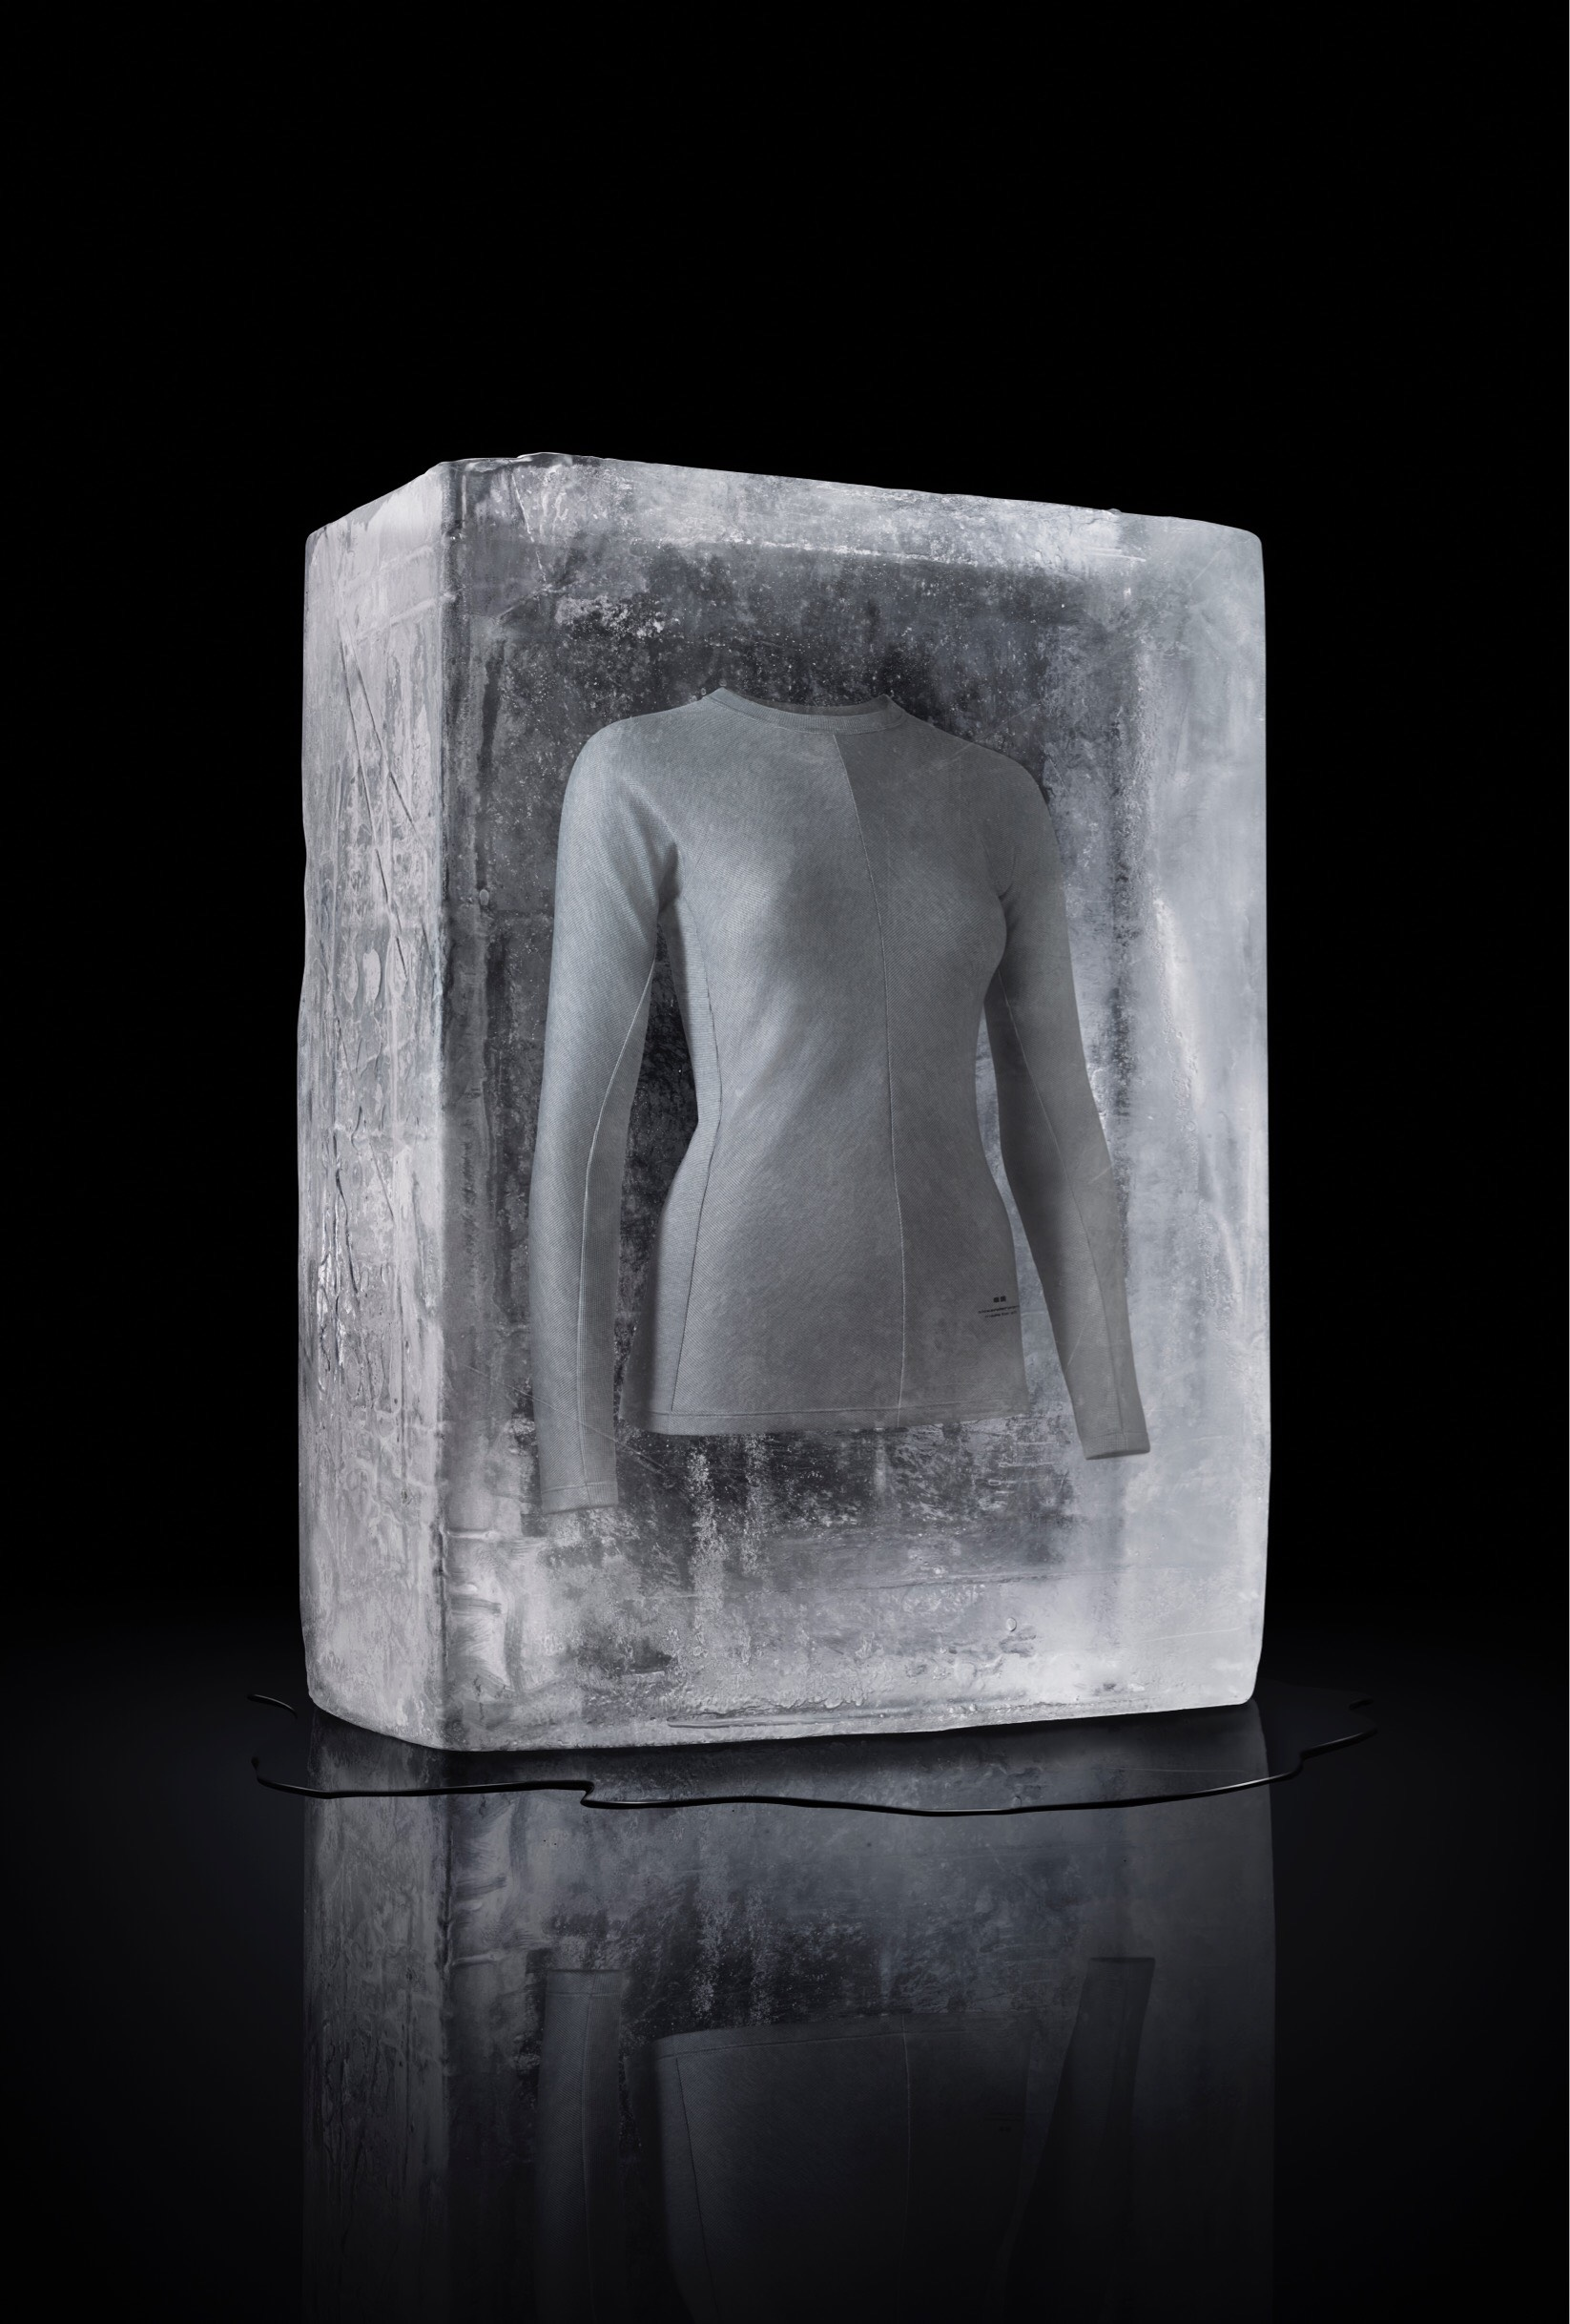 u2018WARMTH REIMAGINED.u2019 Promotional photo shows the collectionu2019s pieces inside an ice block, and according to the press release, u2018express[es] the thought that Heattech transcends fhe cold and is warm enough to melt away the ice it is encased in.u2019 Photo courtesy of Uniqlo